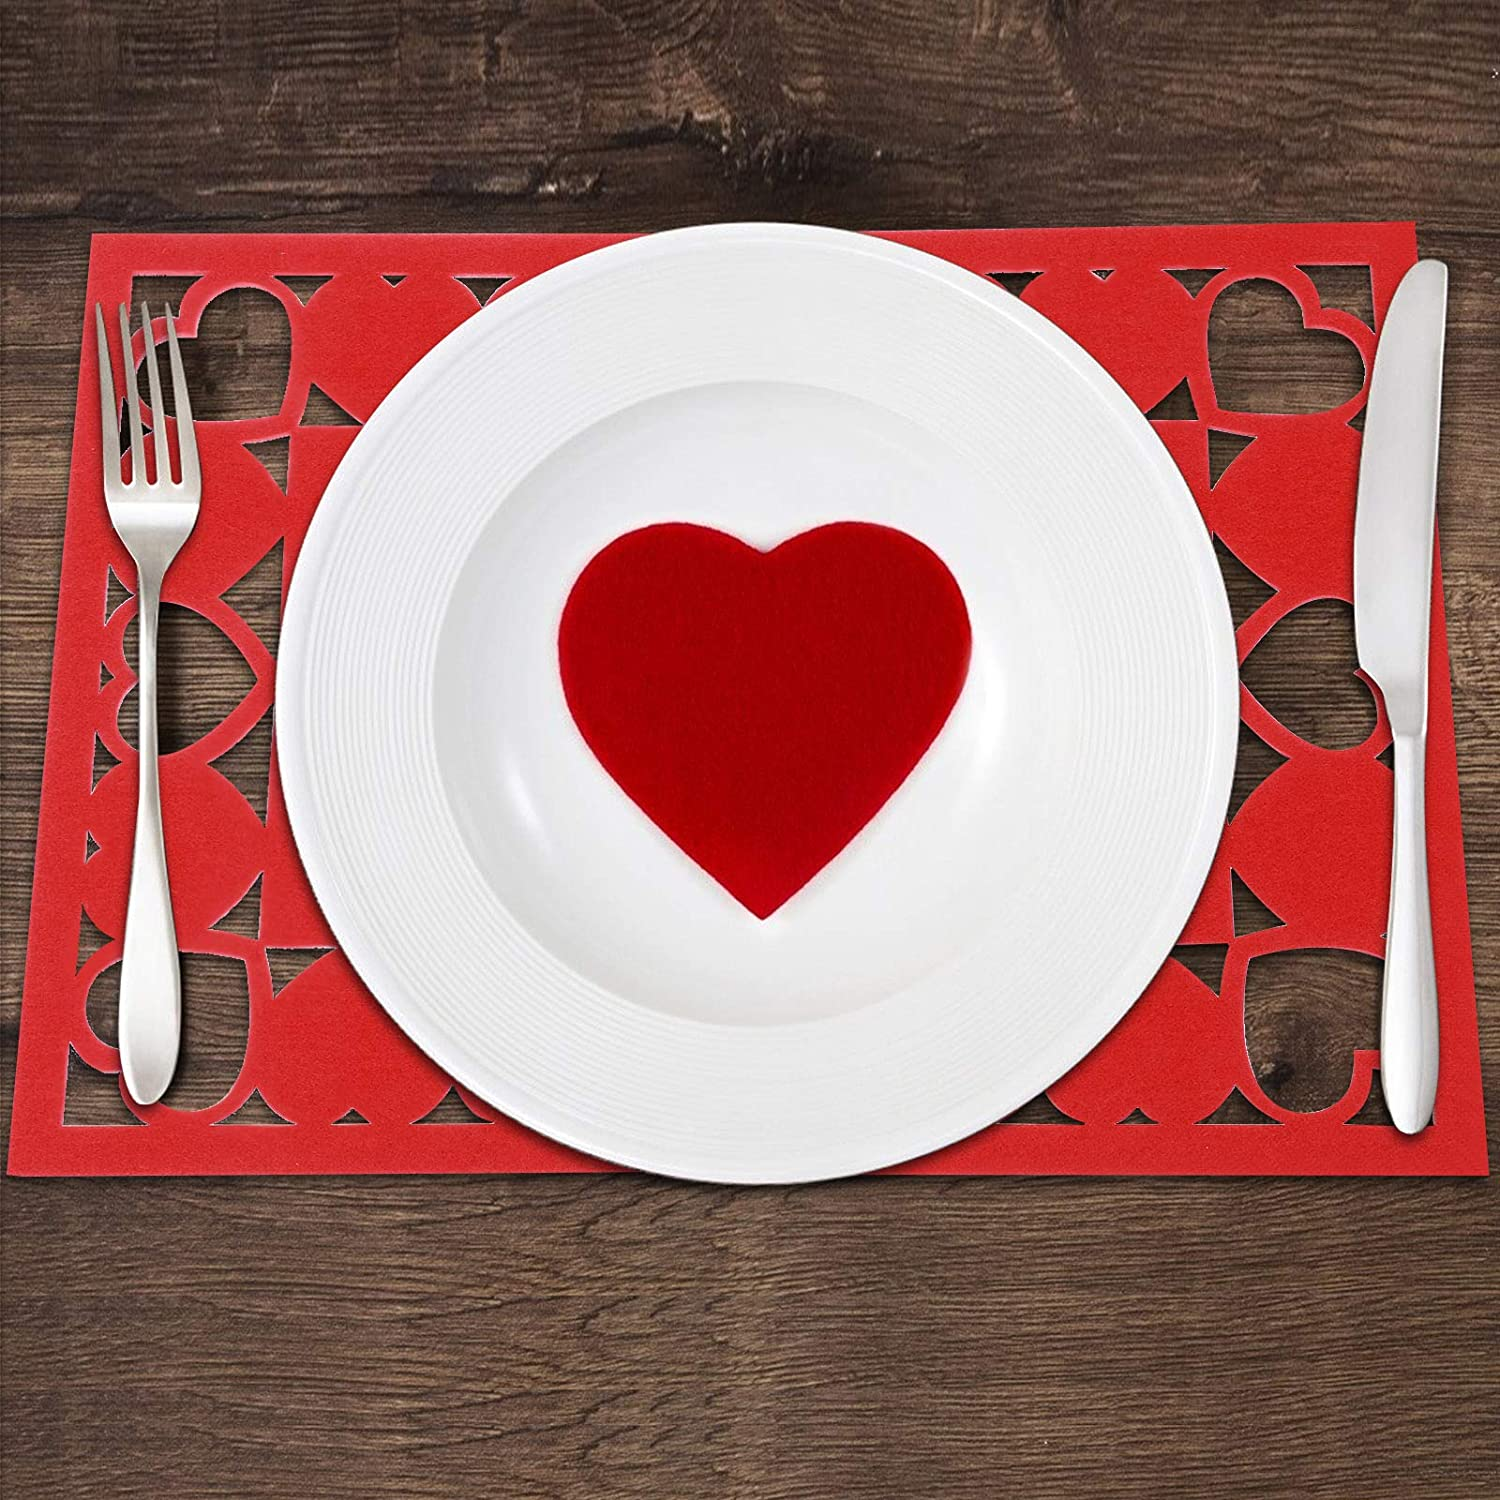 Valentines Day Romantic Dinner Meal 2 Round Red Felt Placemats /& Heart Coasters